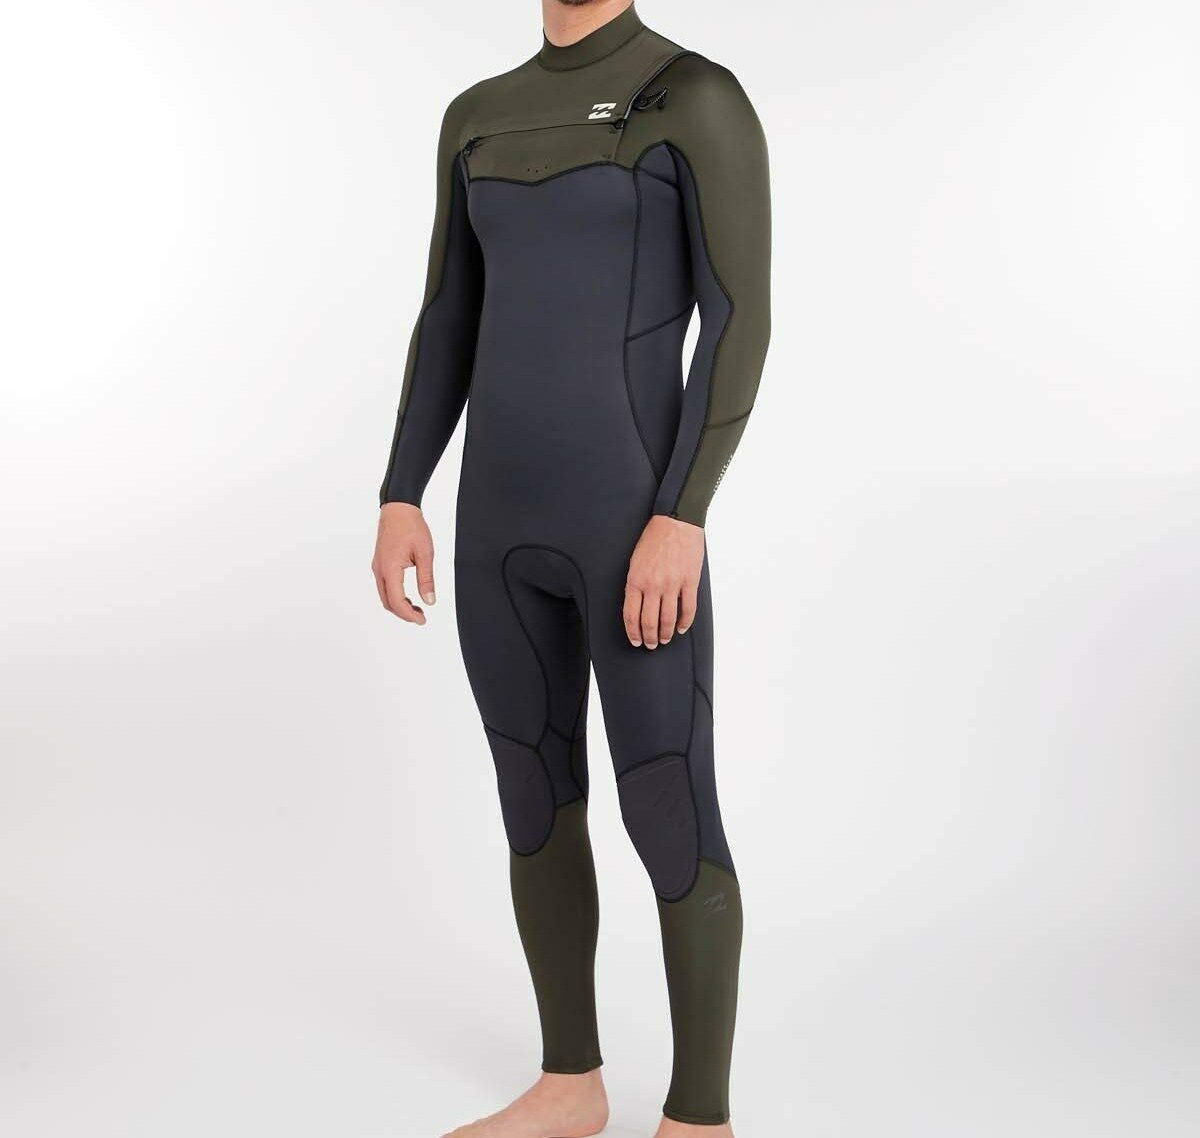 BILLABONG Men's 3 2 FURNACE ABSOLUTE CZ Wetsuit  - DKO - Large Short - NWT  best price